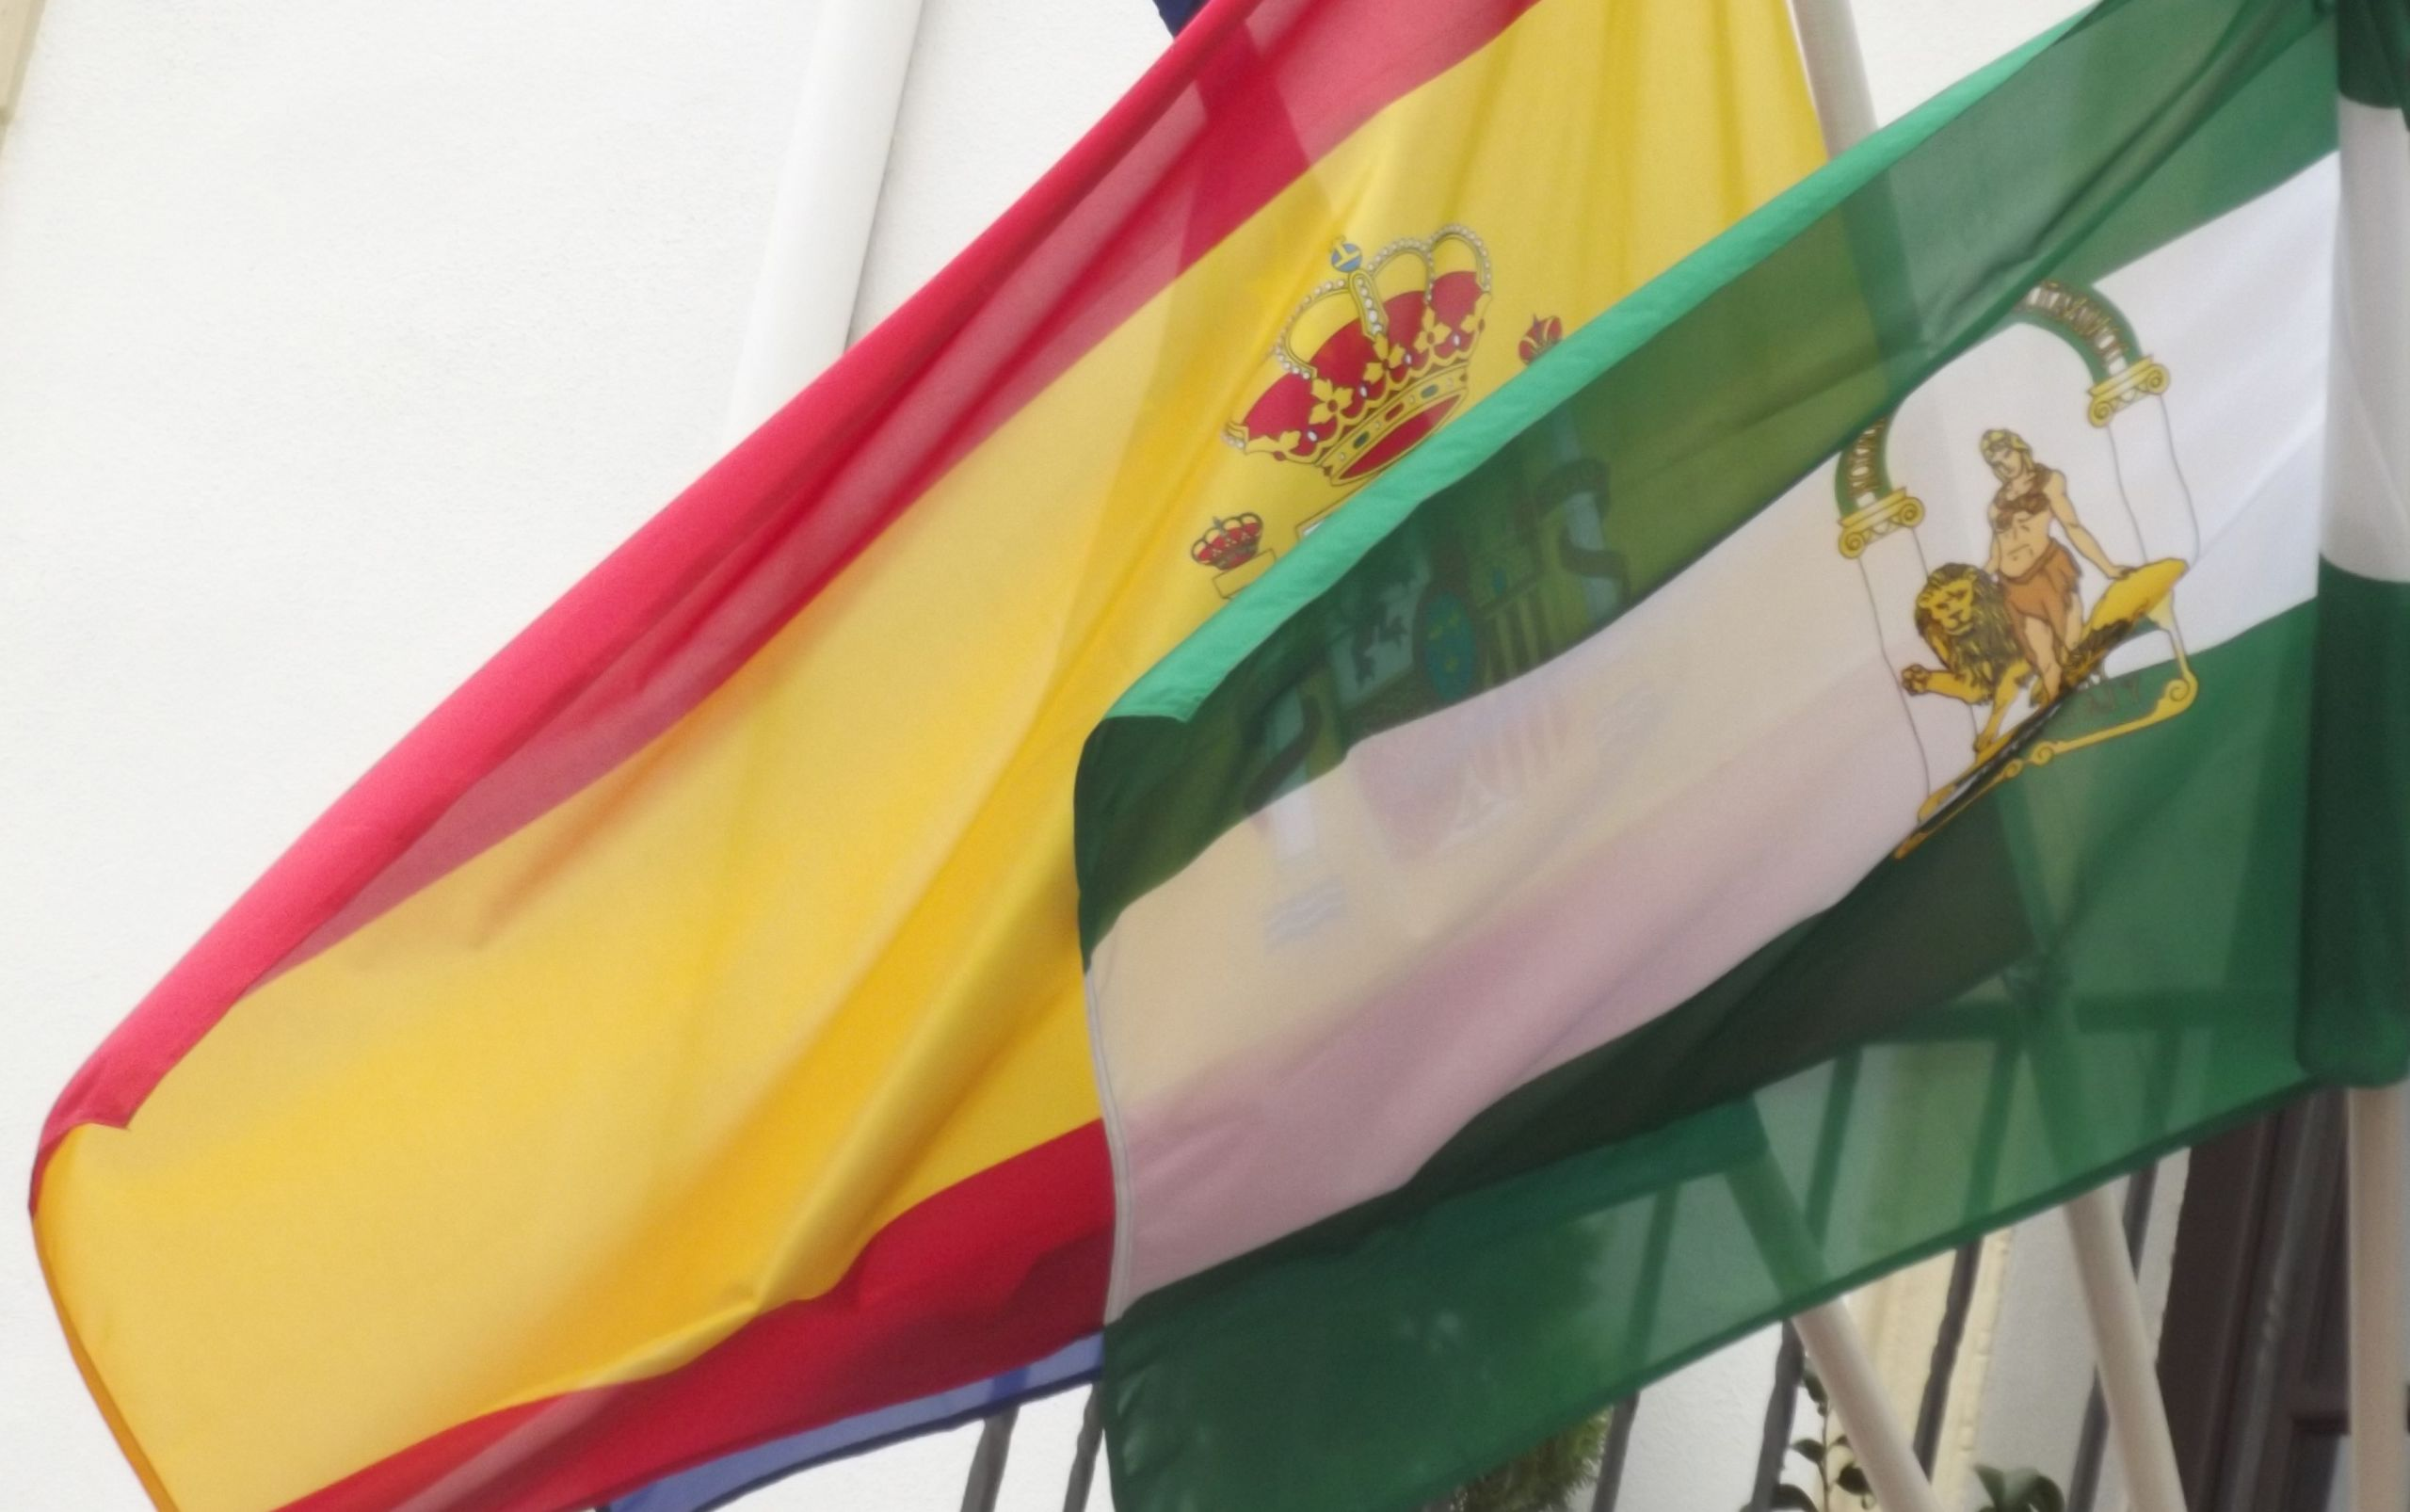 Spanish and Andalusian flags. Courtesy of Elliott Brown under a Creative Commons license.